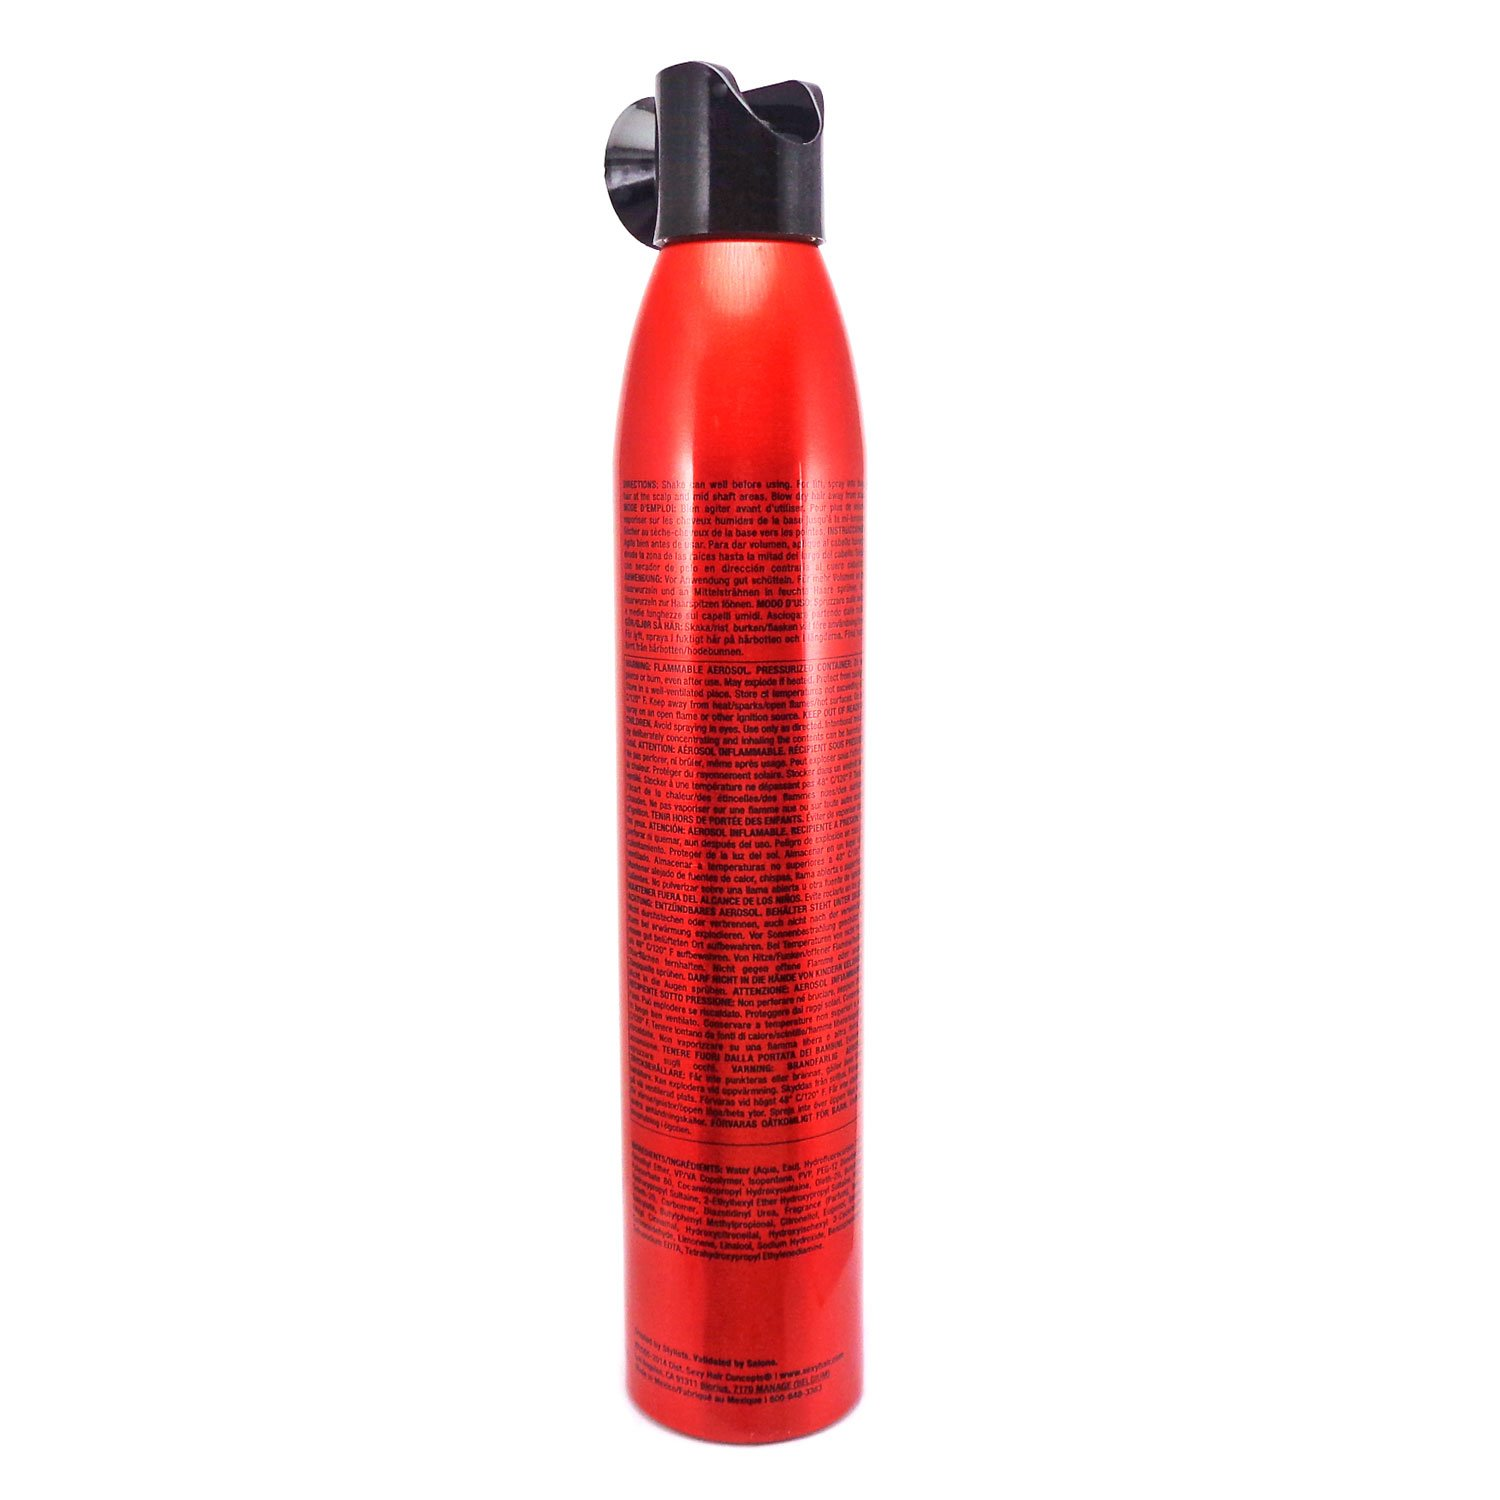 Sexy Hair Big Sexy Hair Root Pump Plus Mousse Unisex Spray, 10 Ounce by Sexy Hair (Image #2)